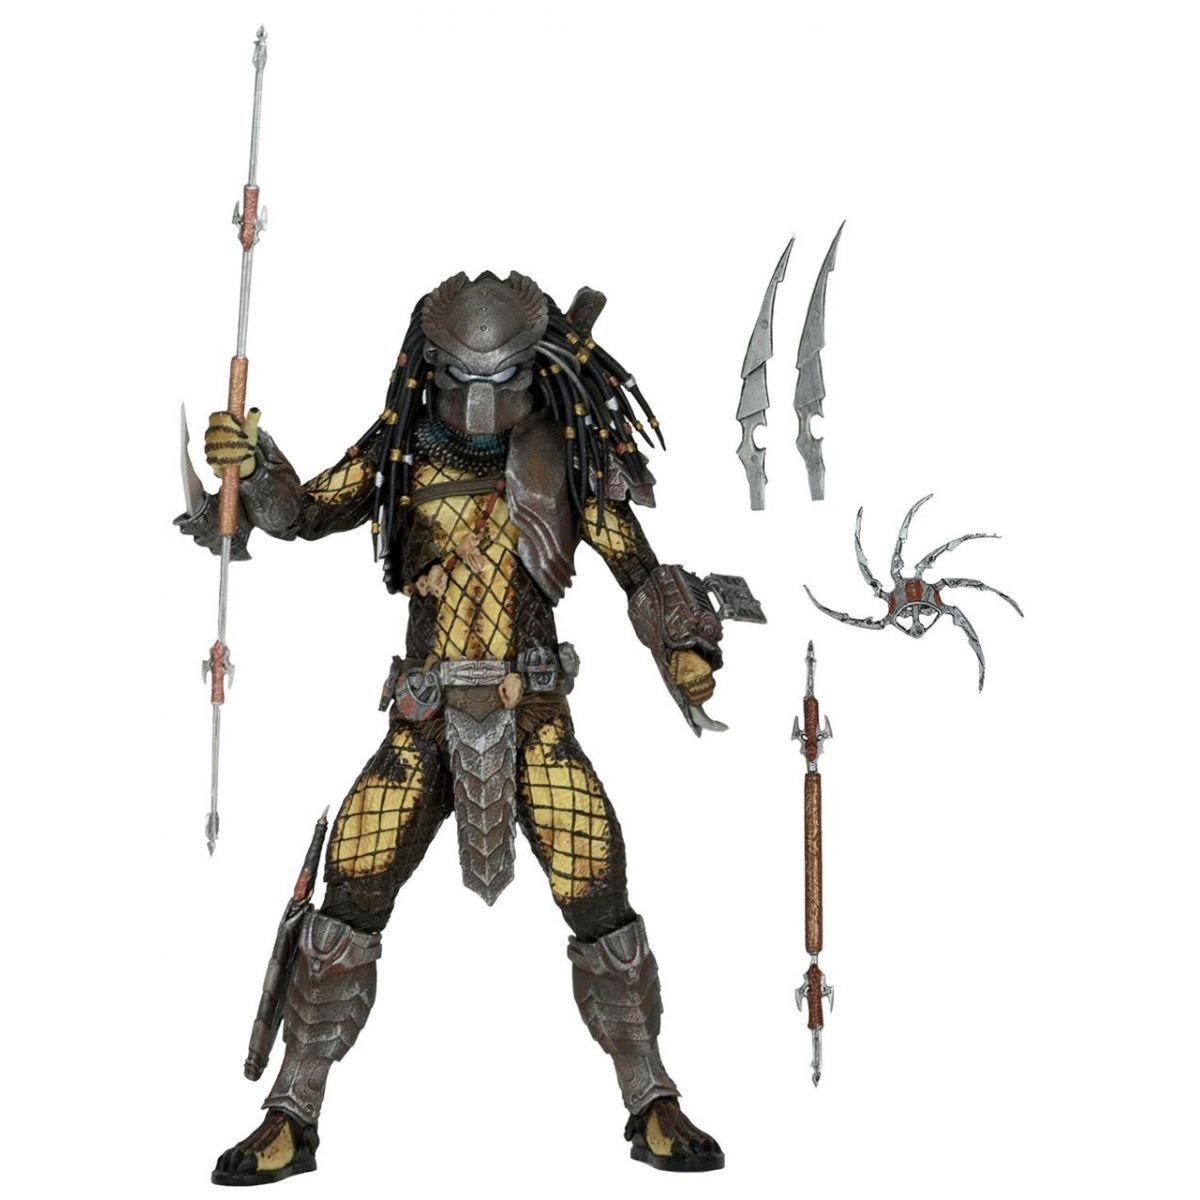 AvP (Alien vs Predador / Predator): Temple Guard Predador / Predator Series 15 Escala 1/10 - NECA